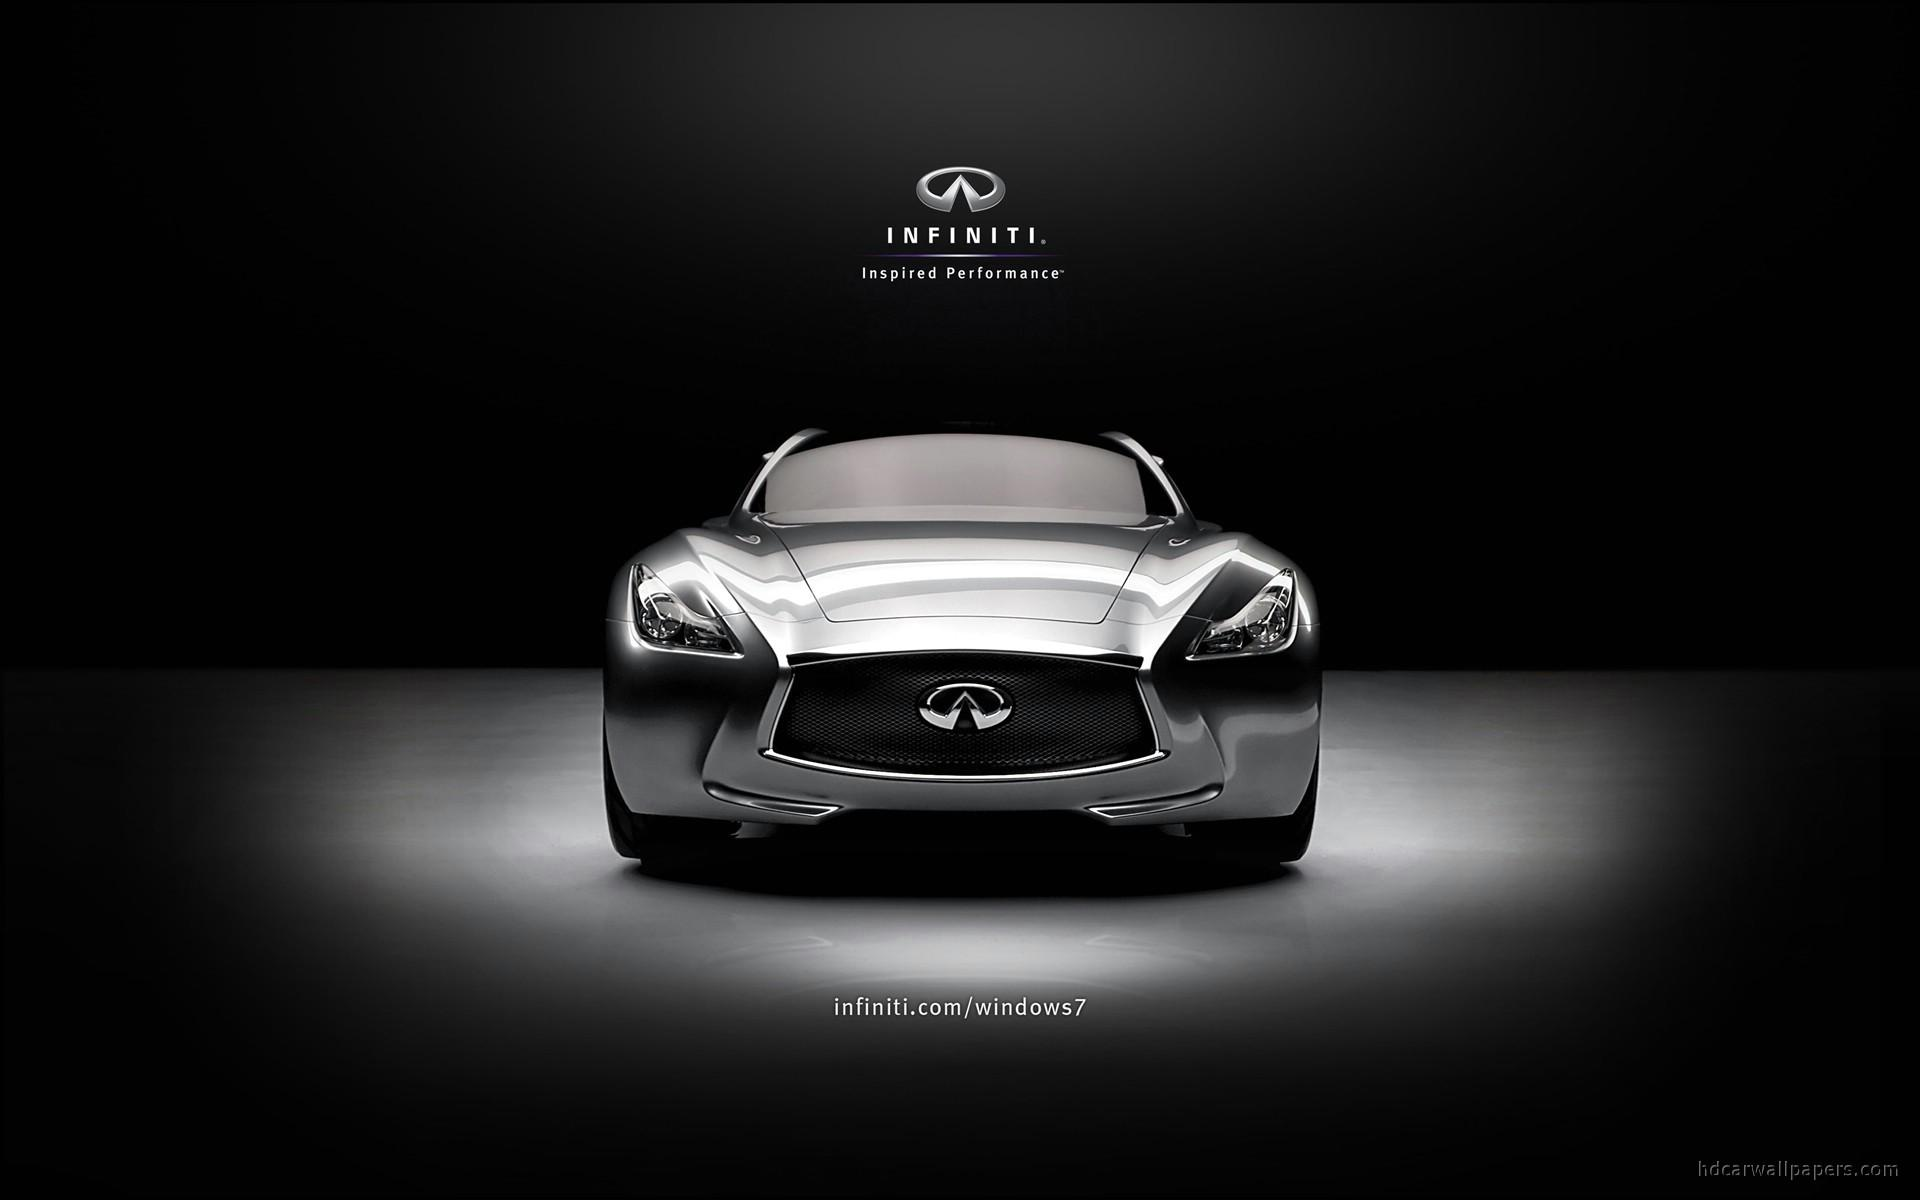 Infiniti Essence Concept for Windows 7 Wallpaper | HD Car Wallpapers ...